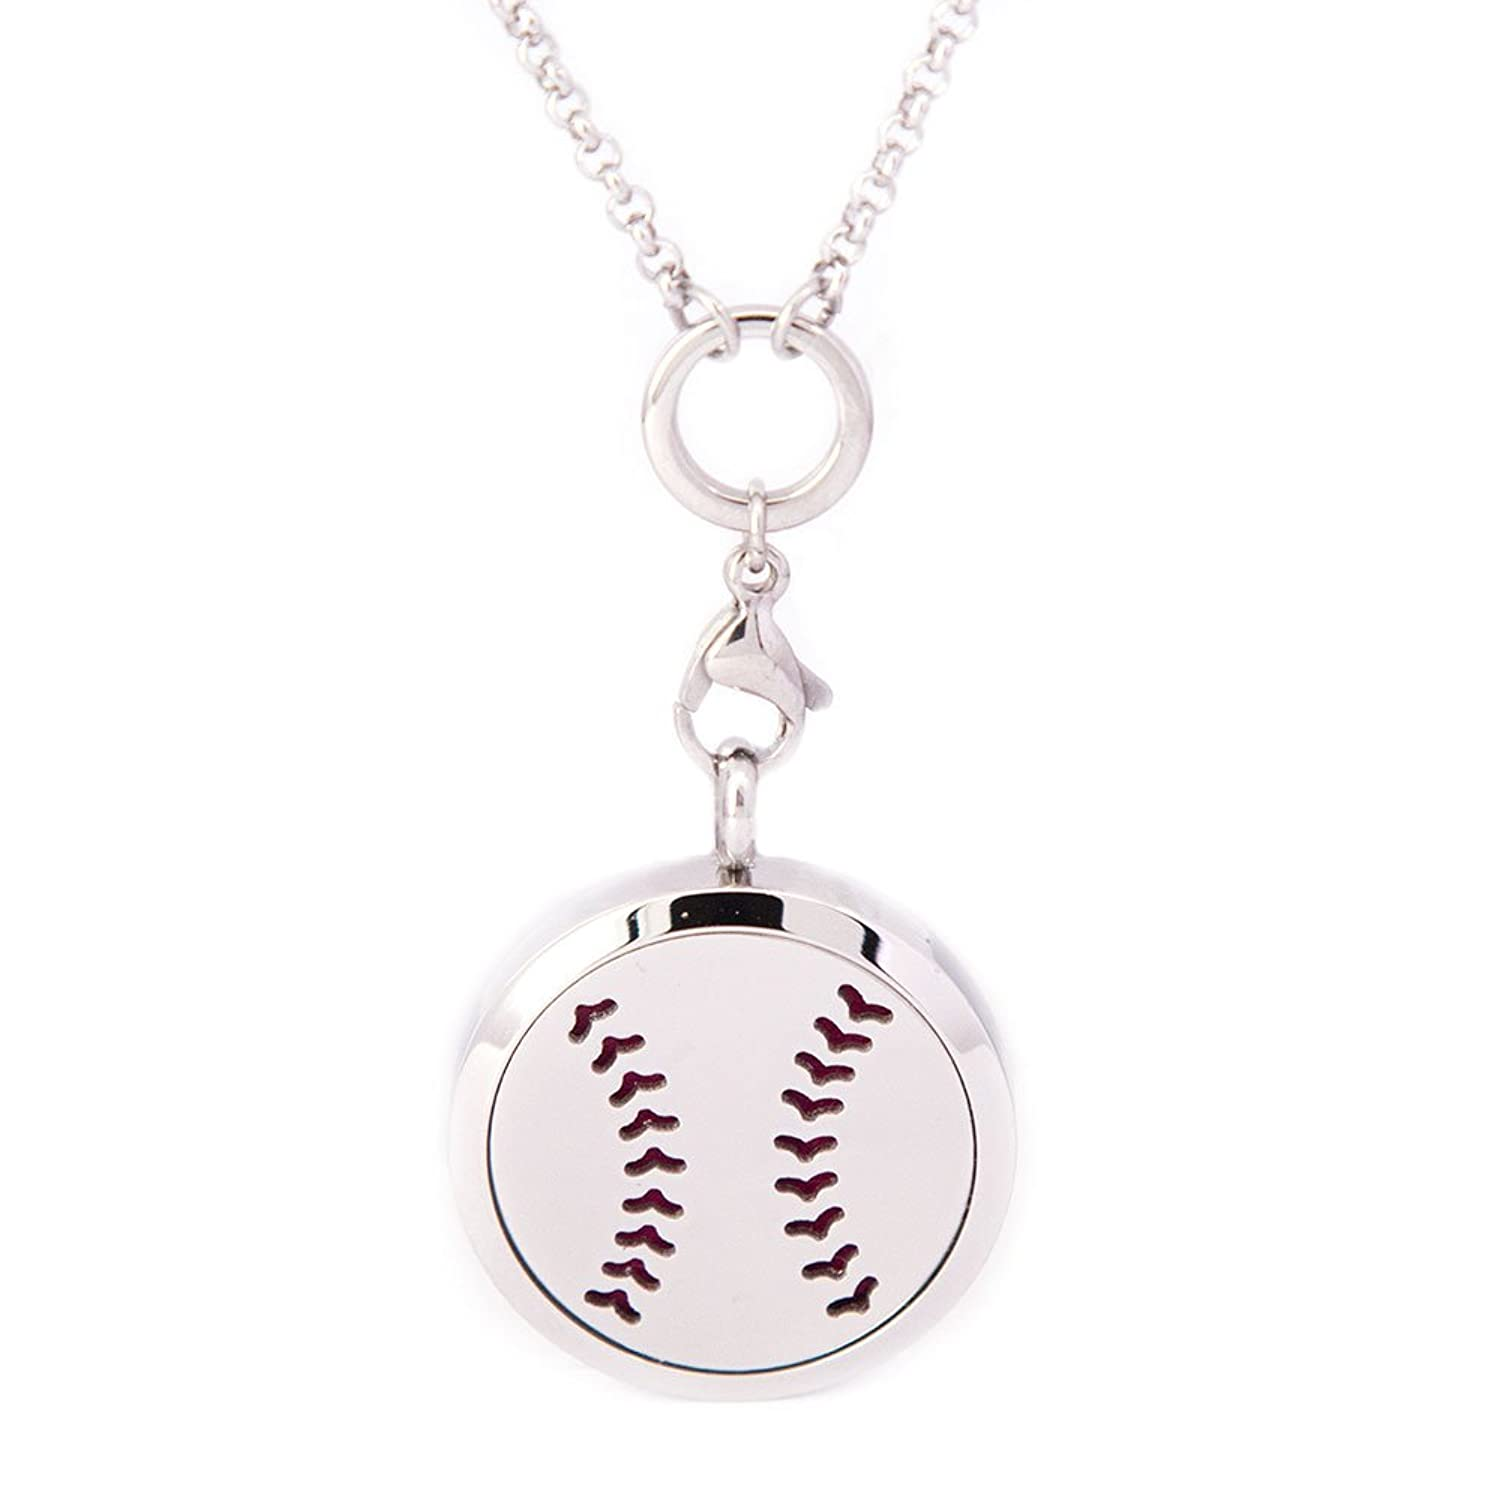 en tag necklace zoom dog il listing pendant for fullxfull sg boy baseball small dogtag